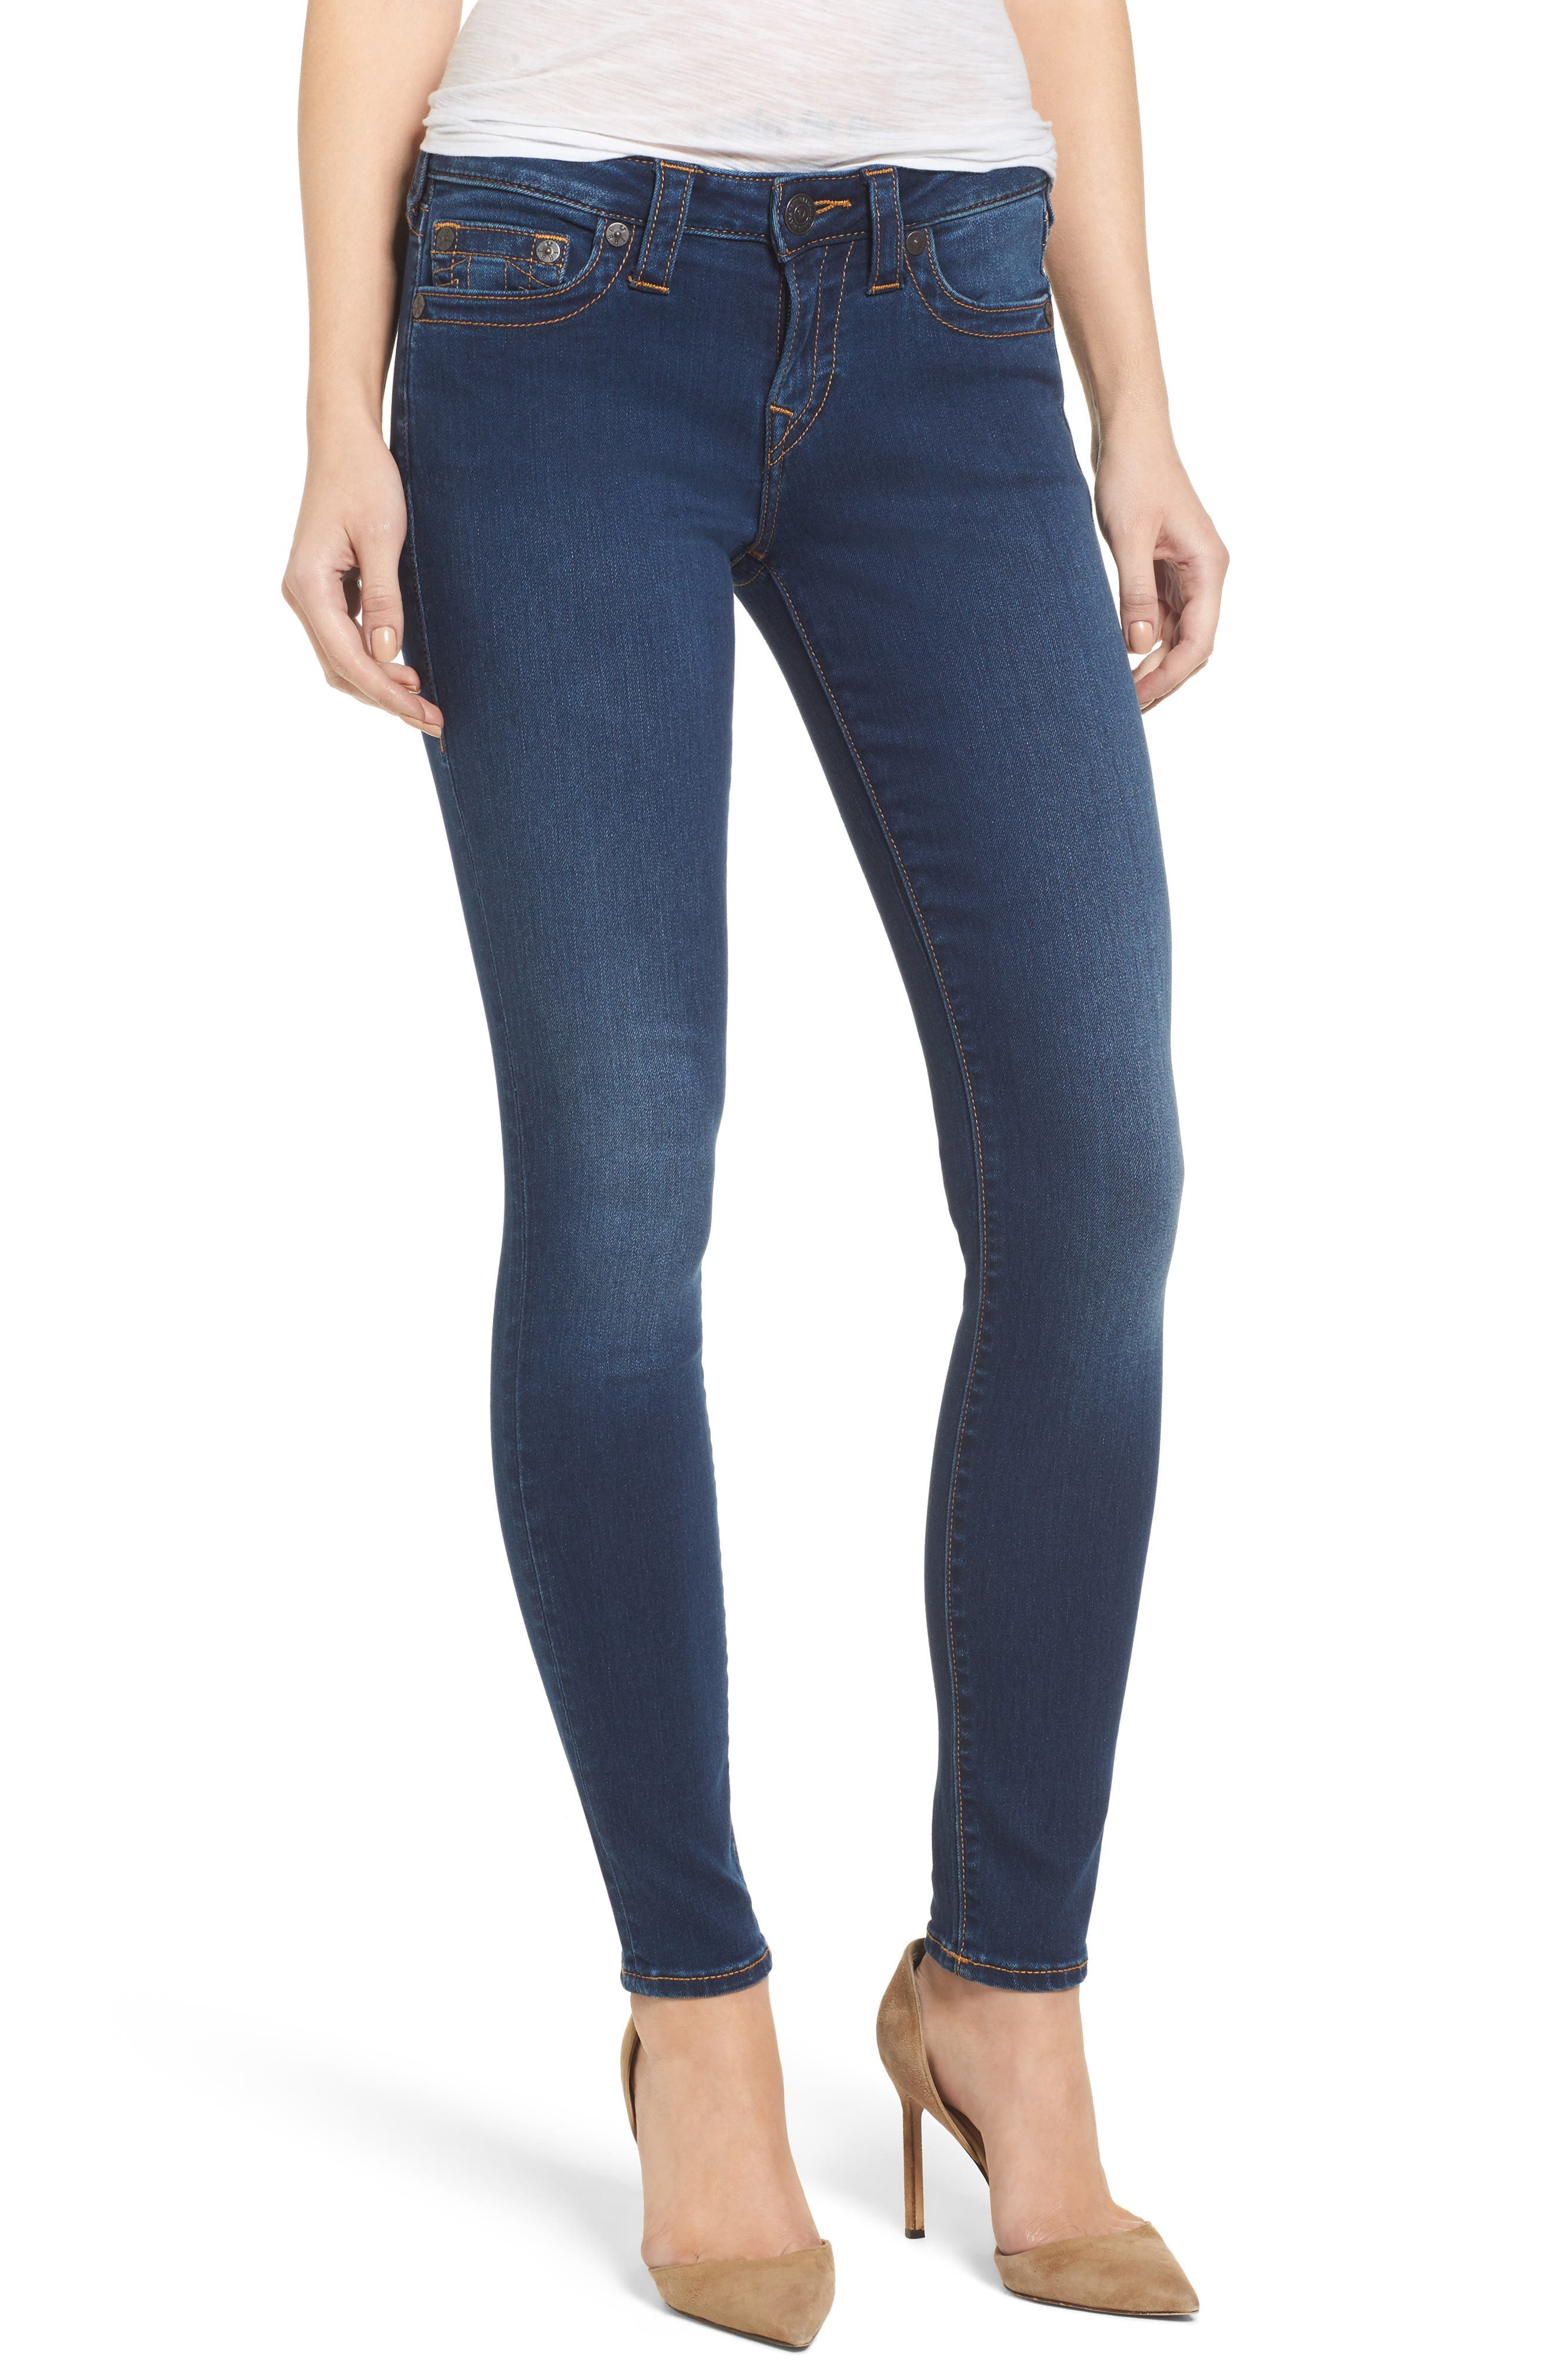 TRUE RELIGION BRAND JEANS Halle Mid Rise Skinny Jeans, Main, color, 400